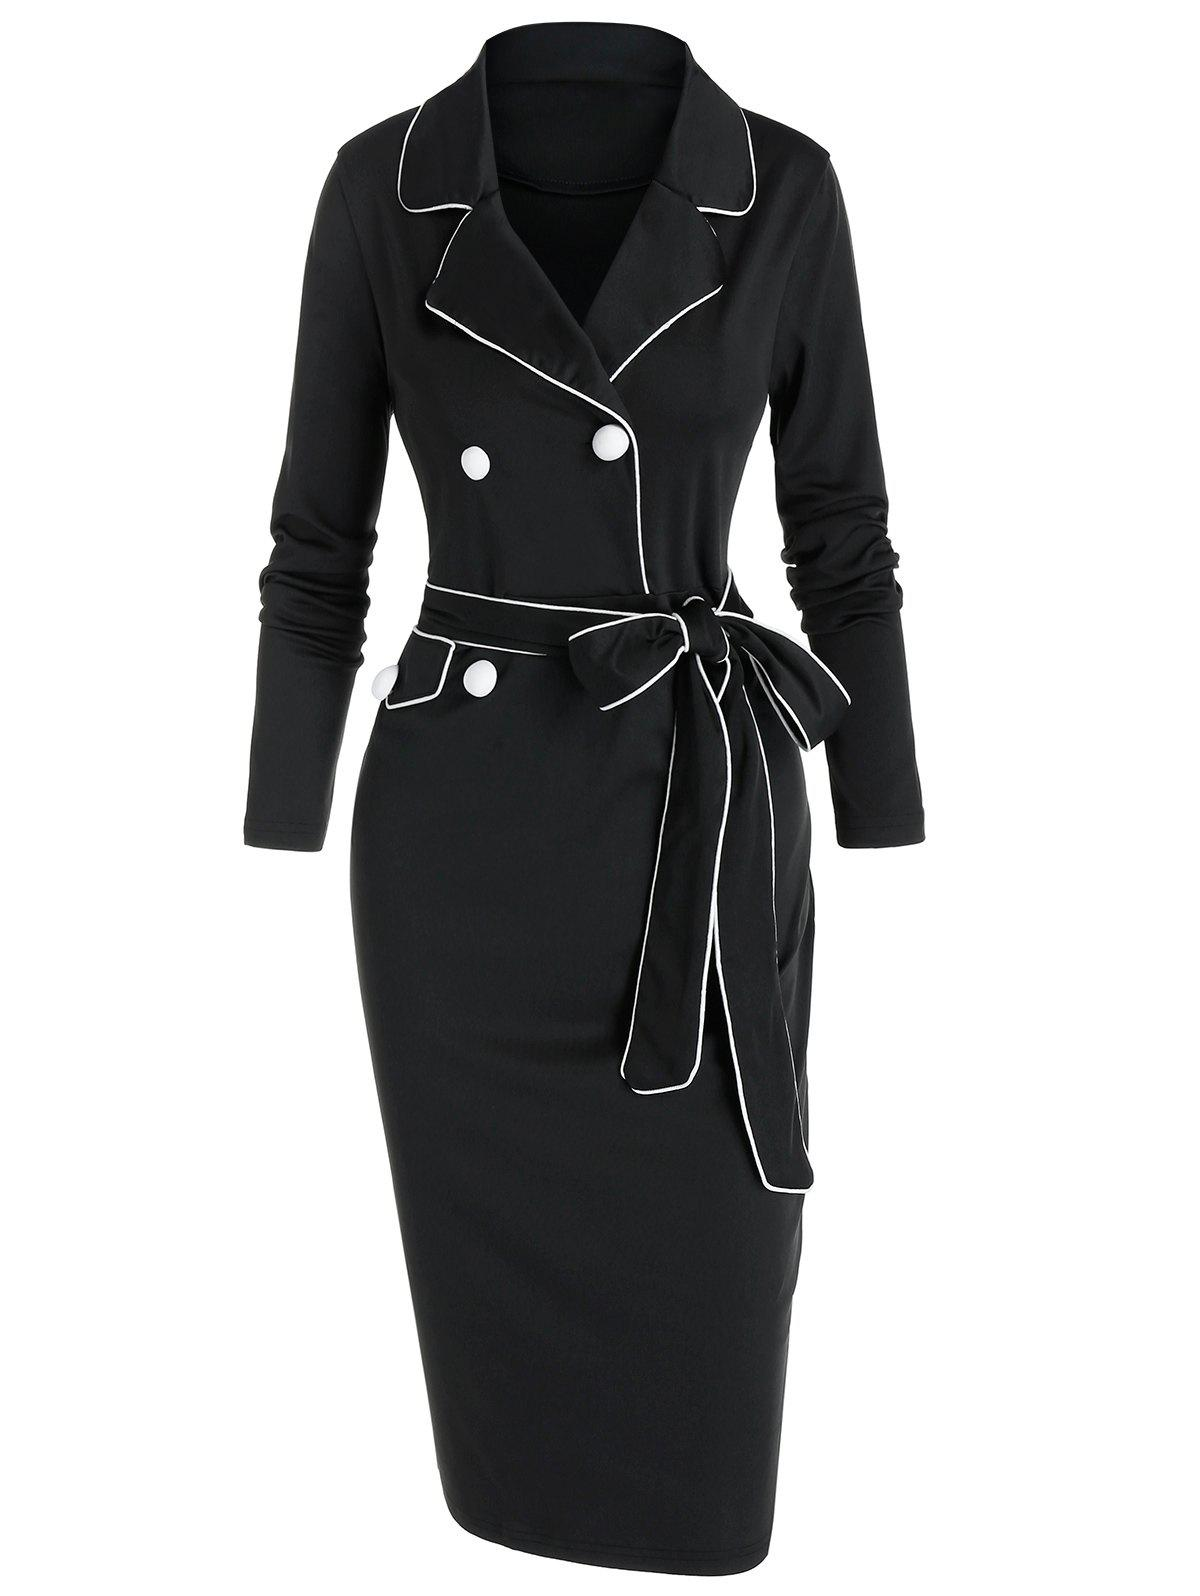 Chic Contrast Piped Lapel Collar Belted Bodycon Dress